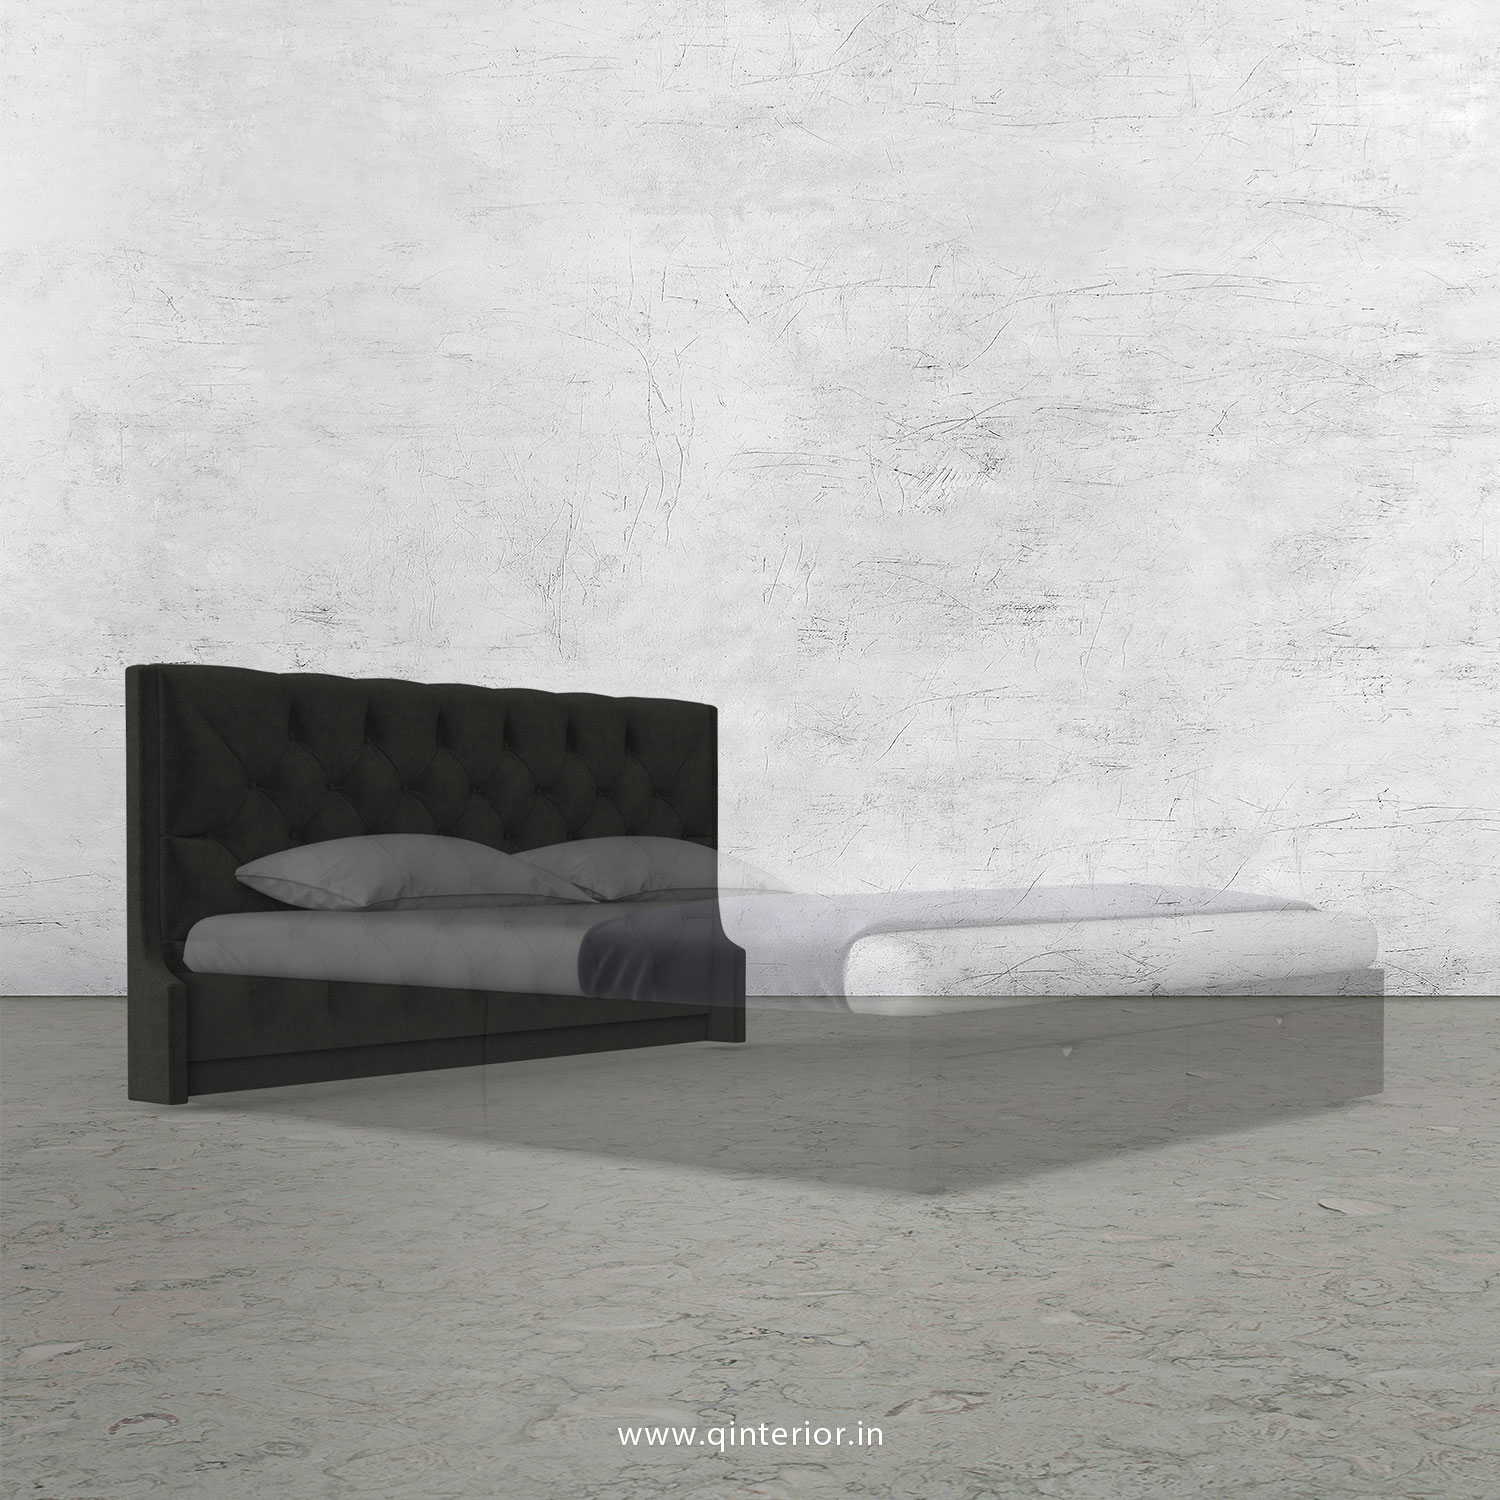 Scorpius Bed Headboard in Velvet Fabric - BHB002 VL07